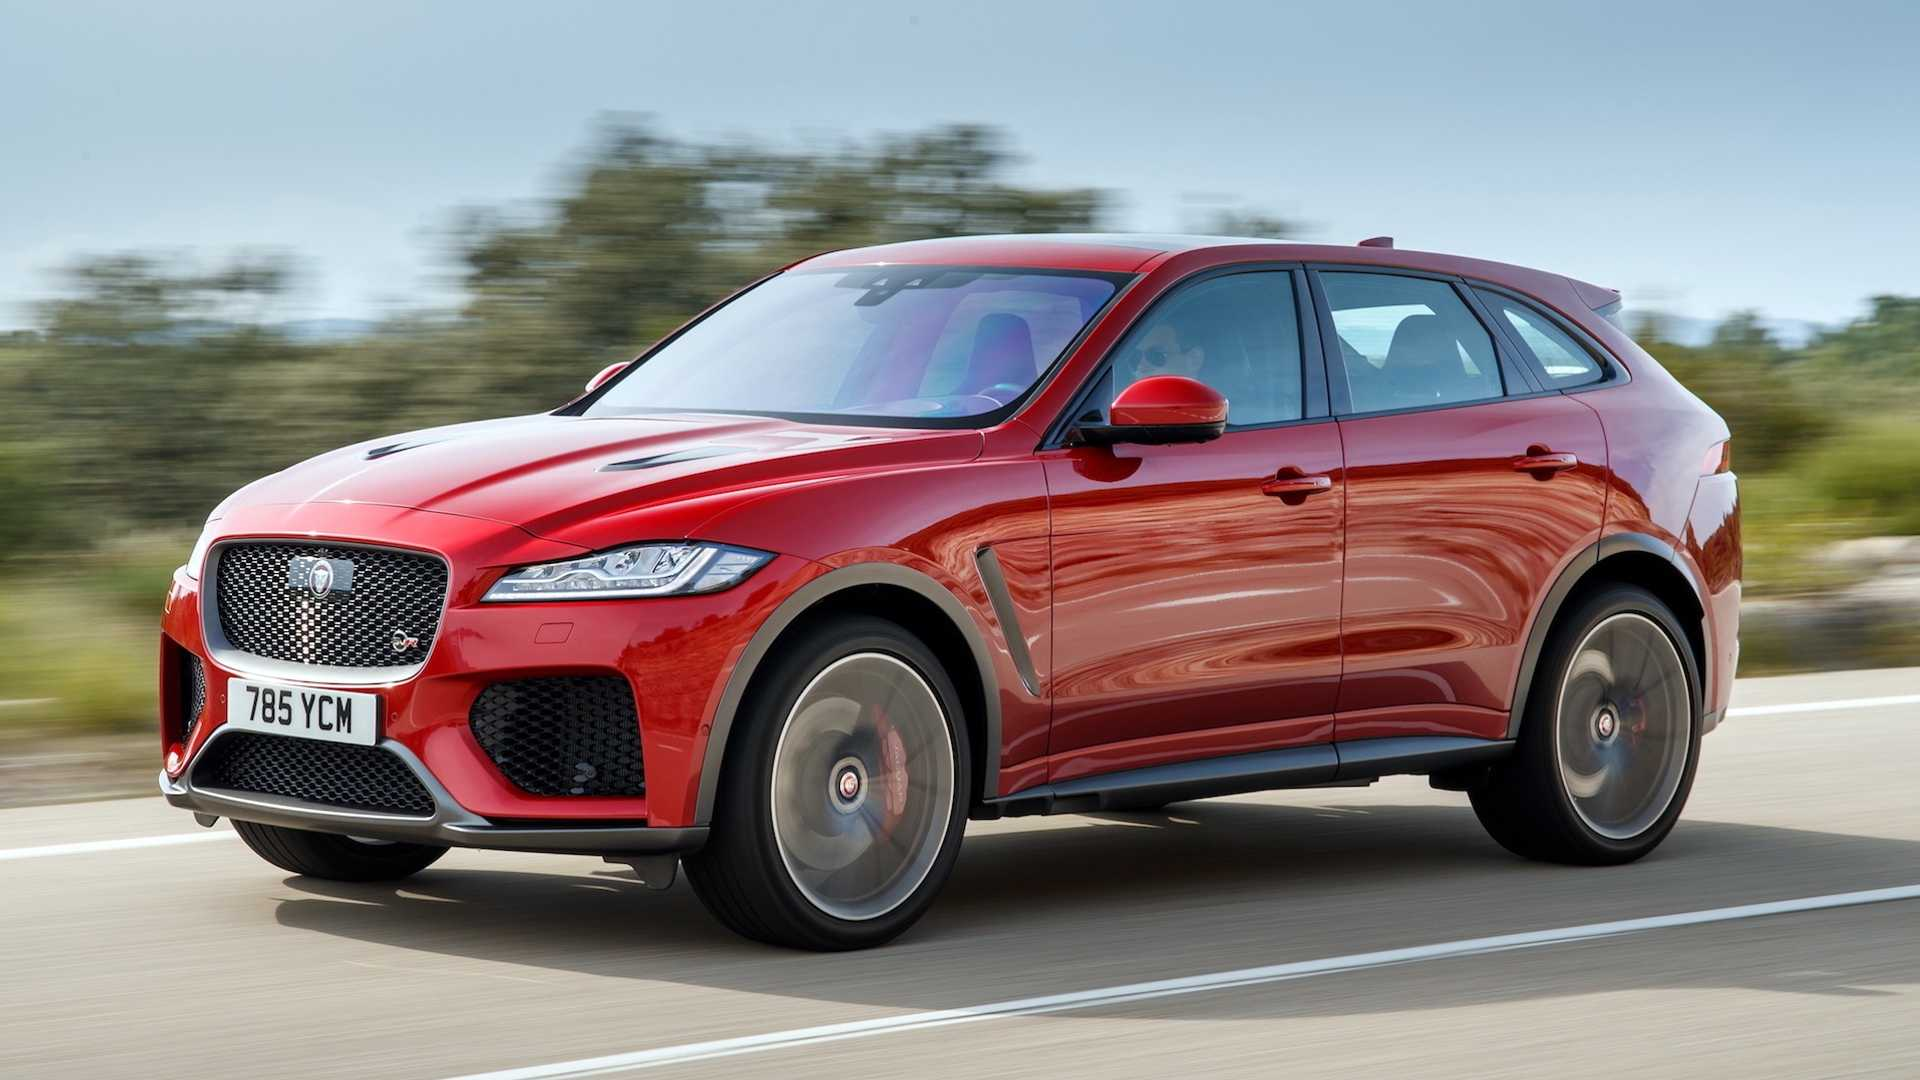 44 Best 2019 Jaguar F Pace Svr Interior